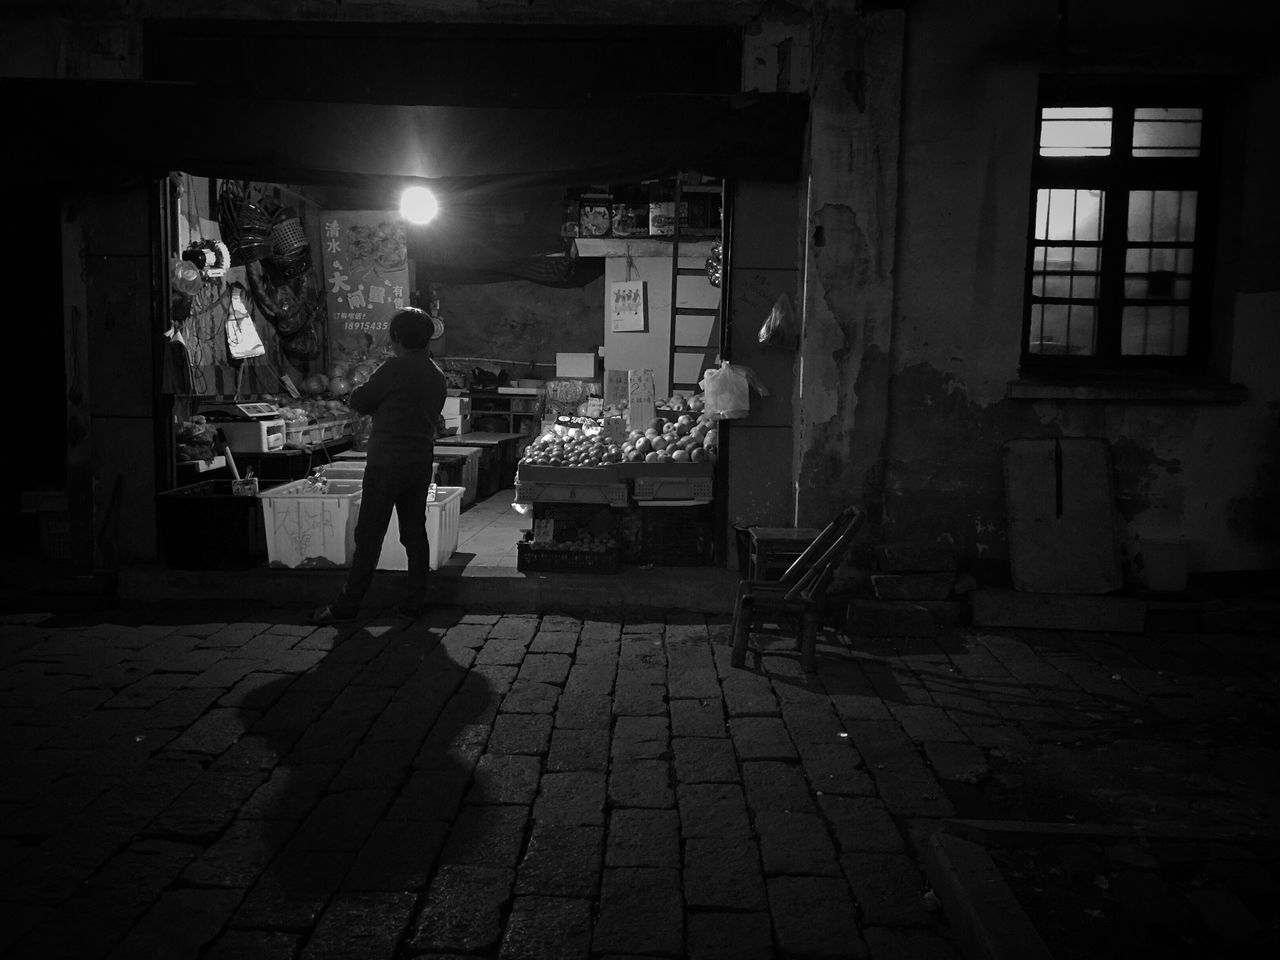 Night Real People One Person Women Bnw Old Daily Life Still Life Bnw_life My Black & White Photography Streetphoto_bw EyeEm Gallery Eye4photography  EyeEm Taiwan Streetphotography Street Photo Blackandwhite Night Lights For Sale Selling Night View Small Business Standing Street Photography The City Light